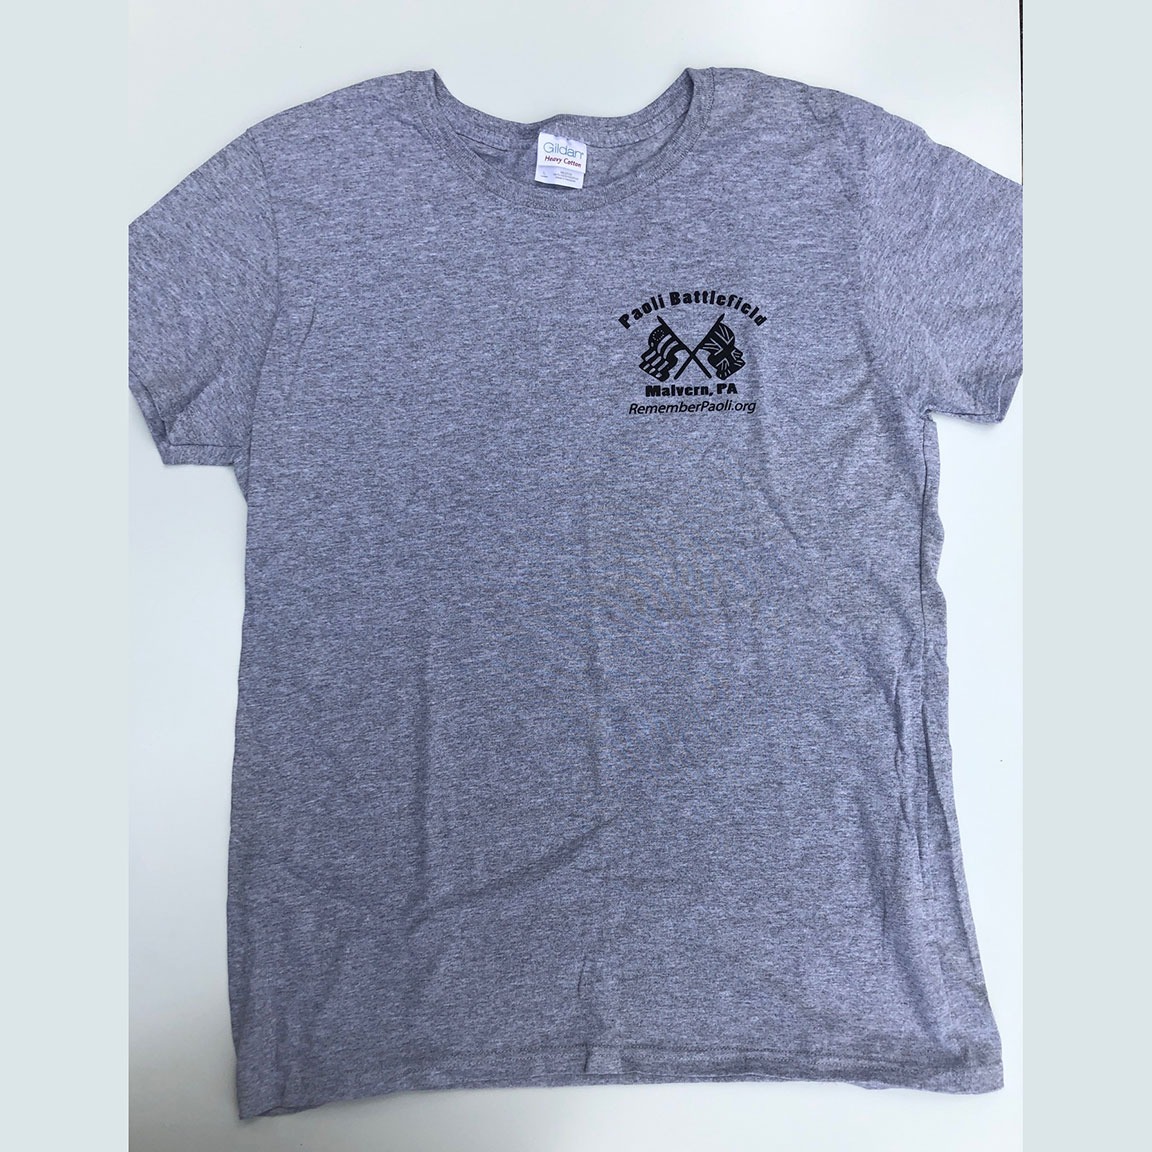 Paoli Battlefield Heritage Day 2015 - Gray Shirt, Front